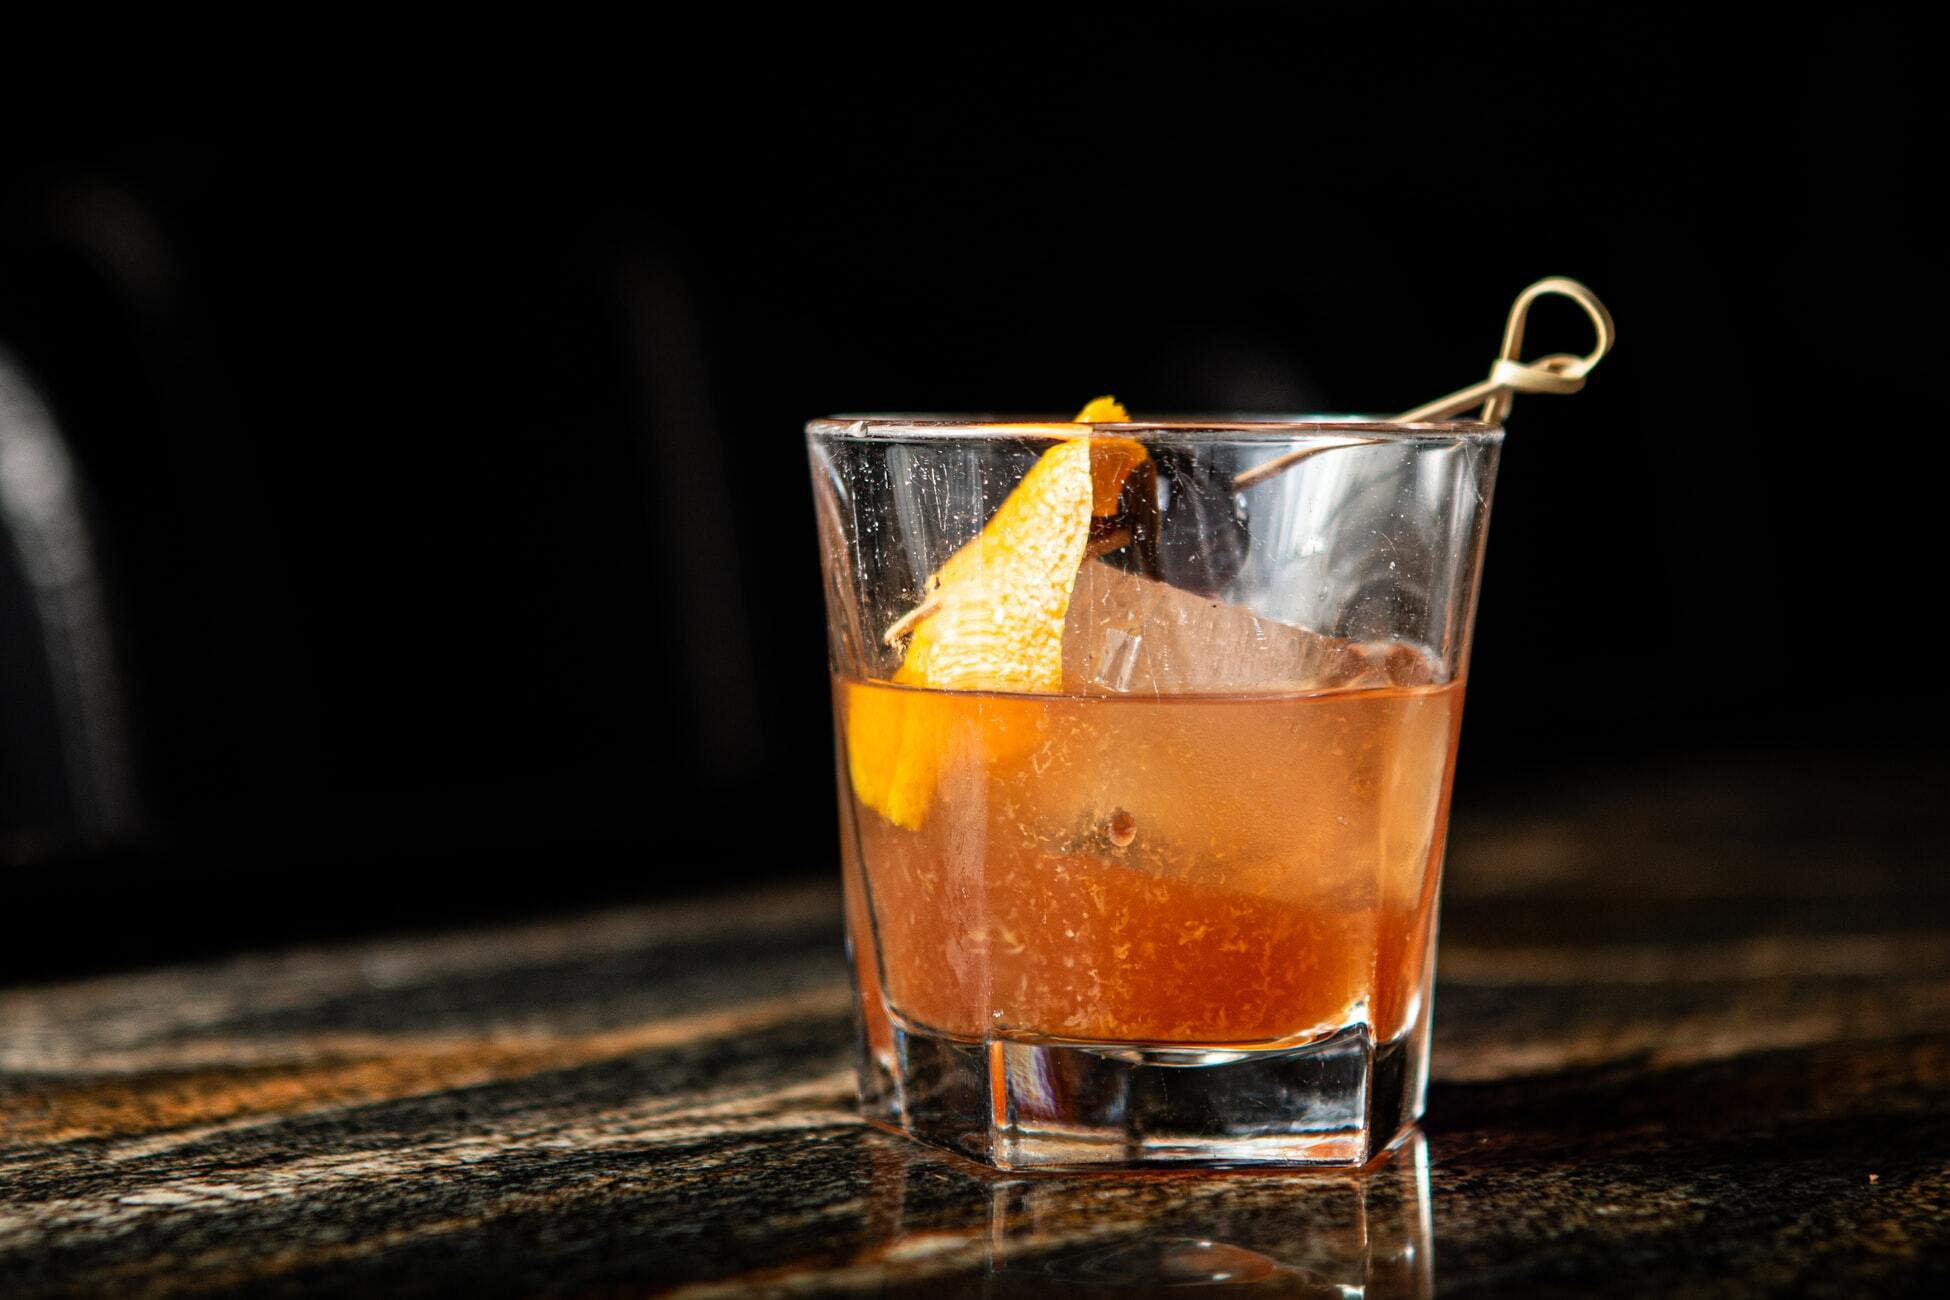 Learn how to create amazing drinks from home